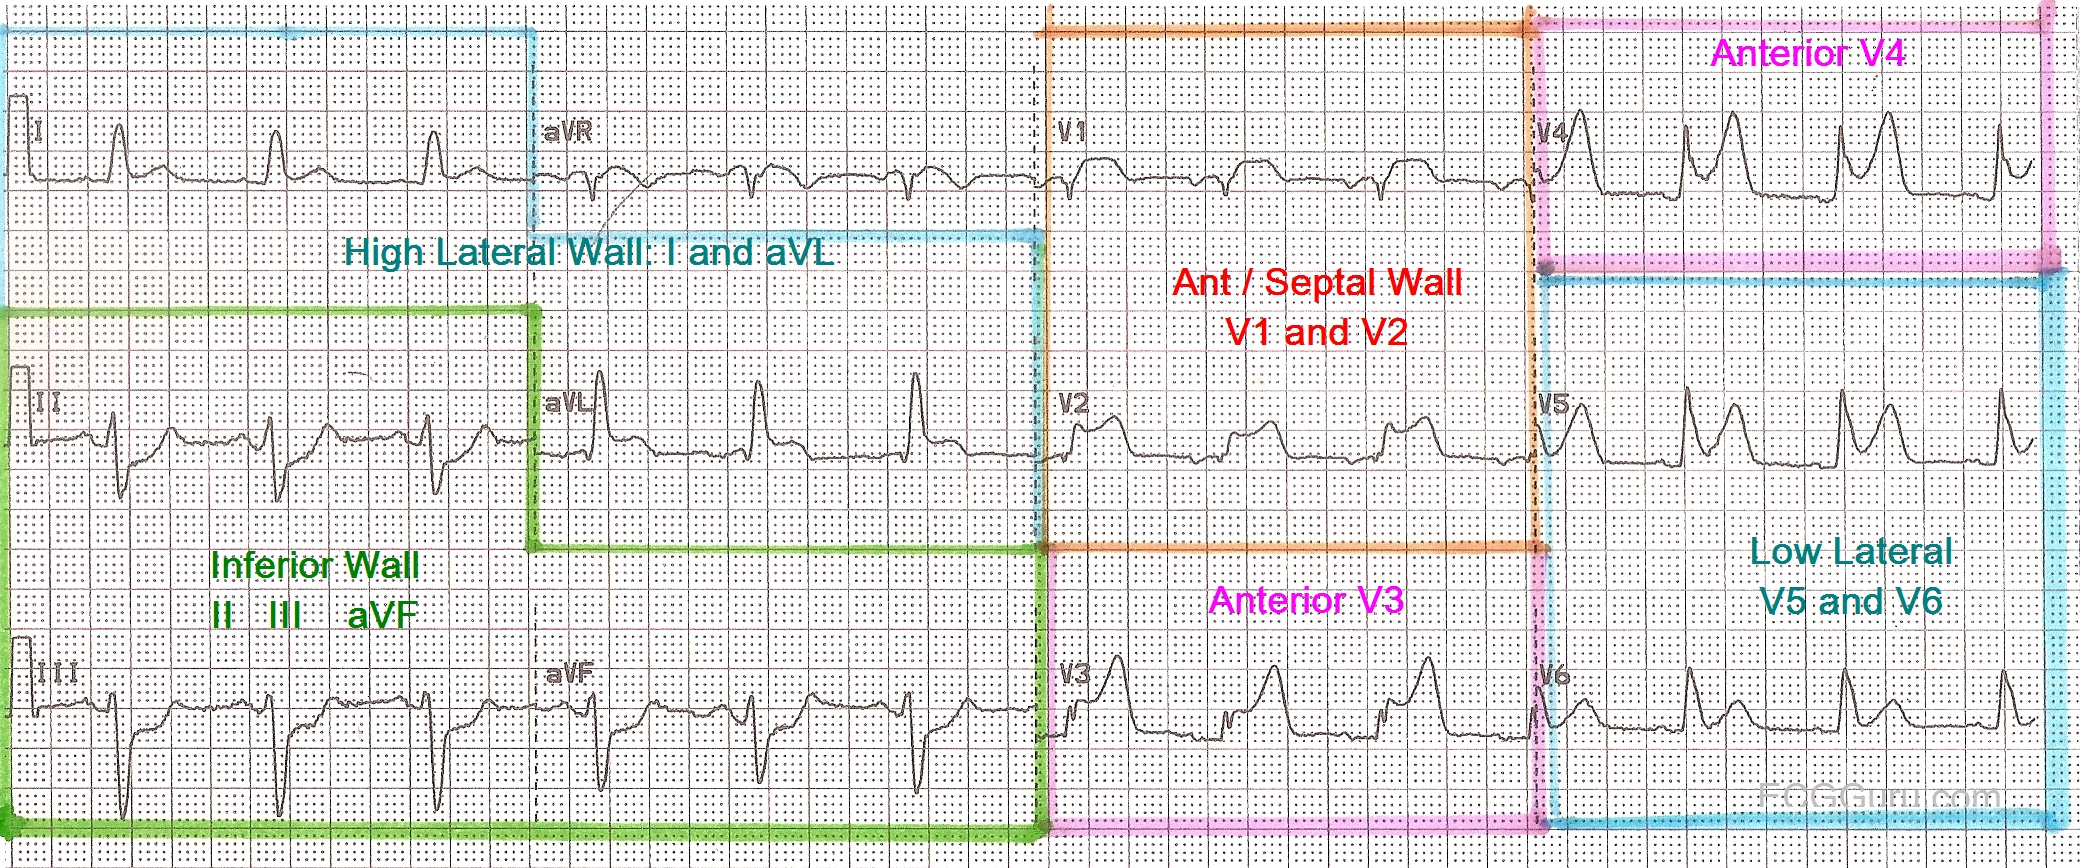 Mapped 12 Lead Ecg Images